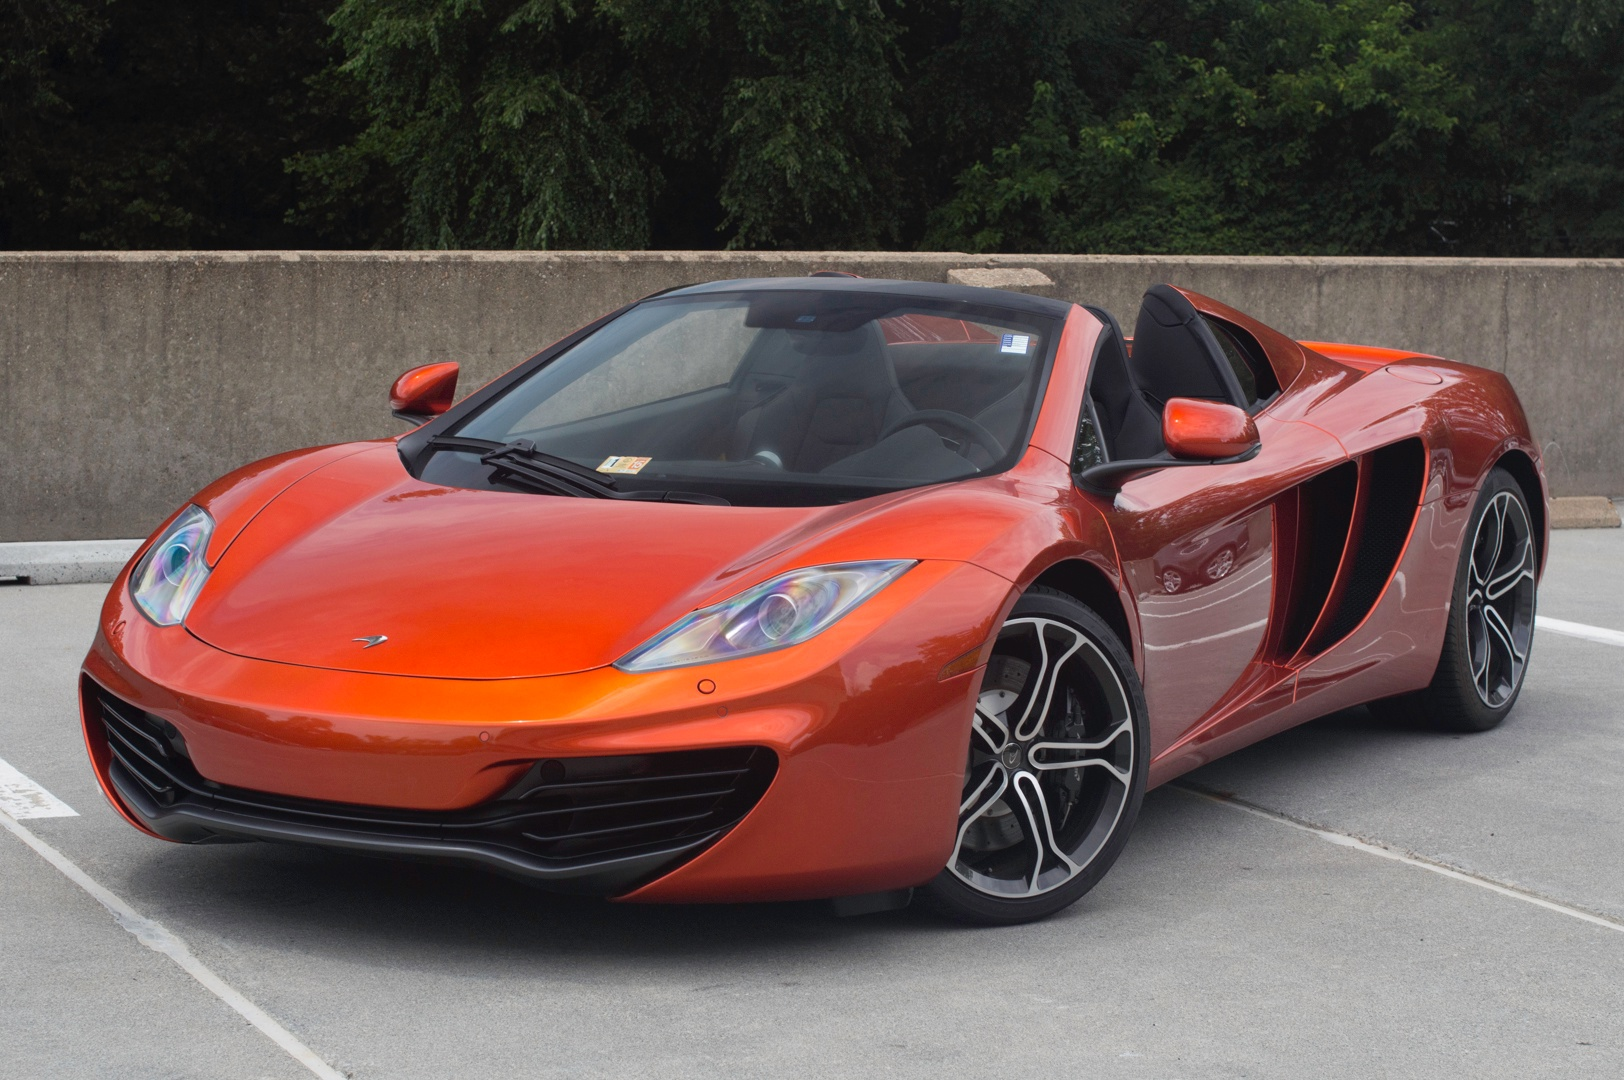 2014 mclaren mp4 12c stock 4n003229 for sale near vienna. Black Bedroom Furniture Sets. Home Design Ideas